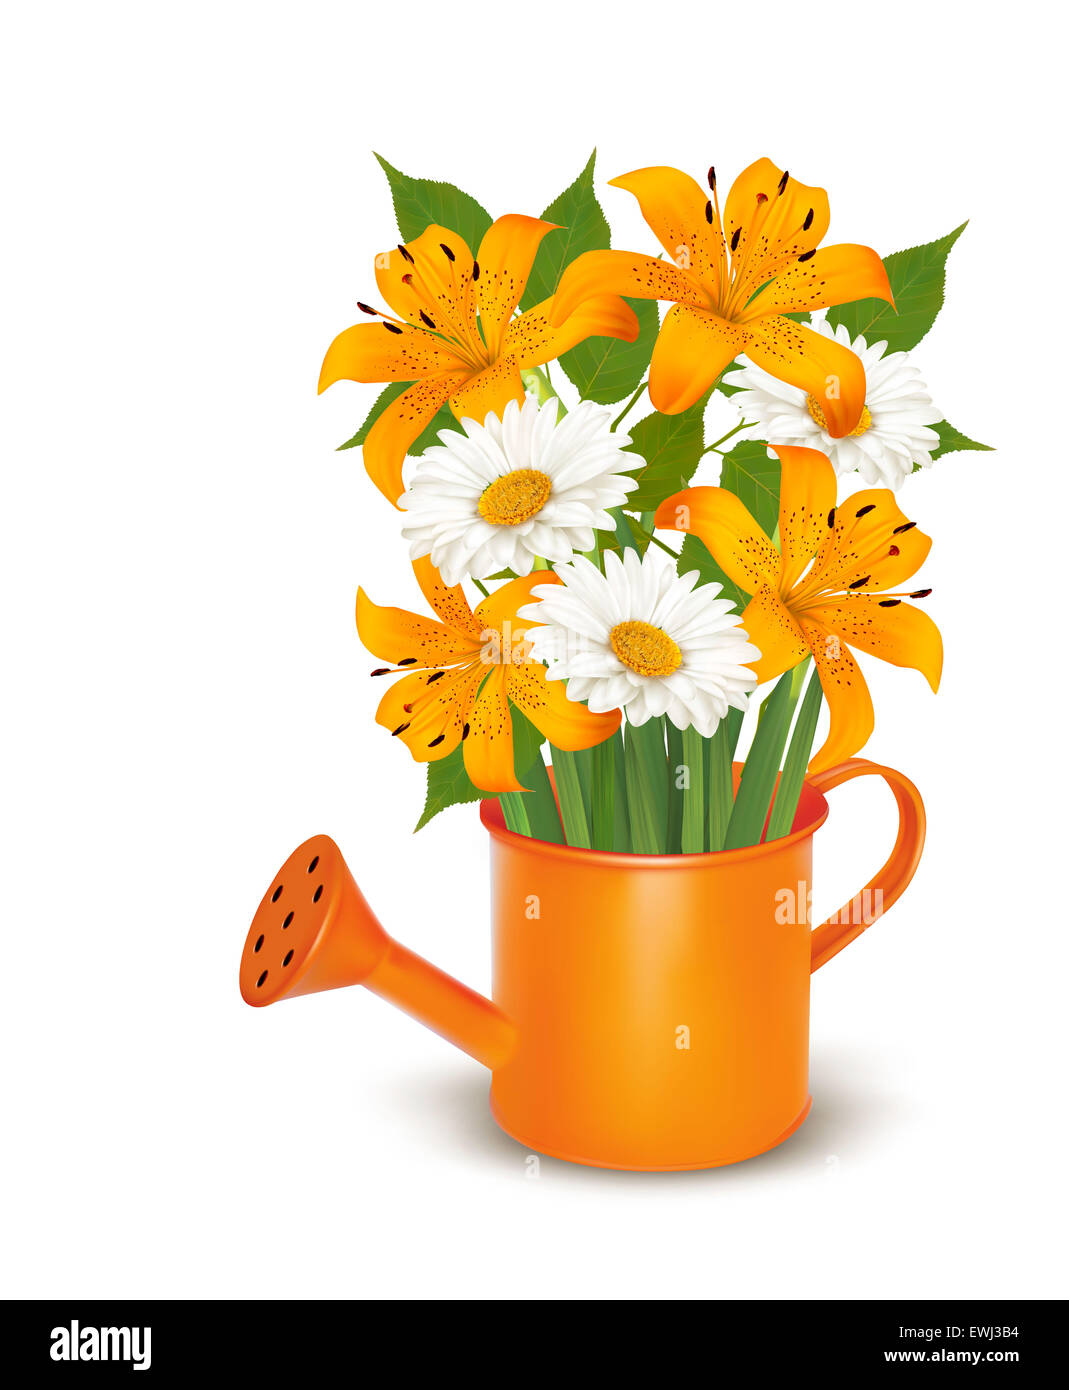 Watering can with a bouquet of flowers vector stock photo 84605672 watering can with a bouquet of flowers vector izmirmasajfo